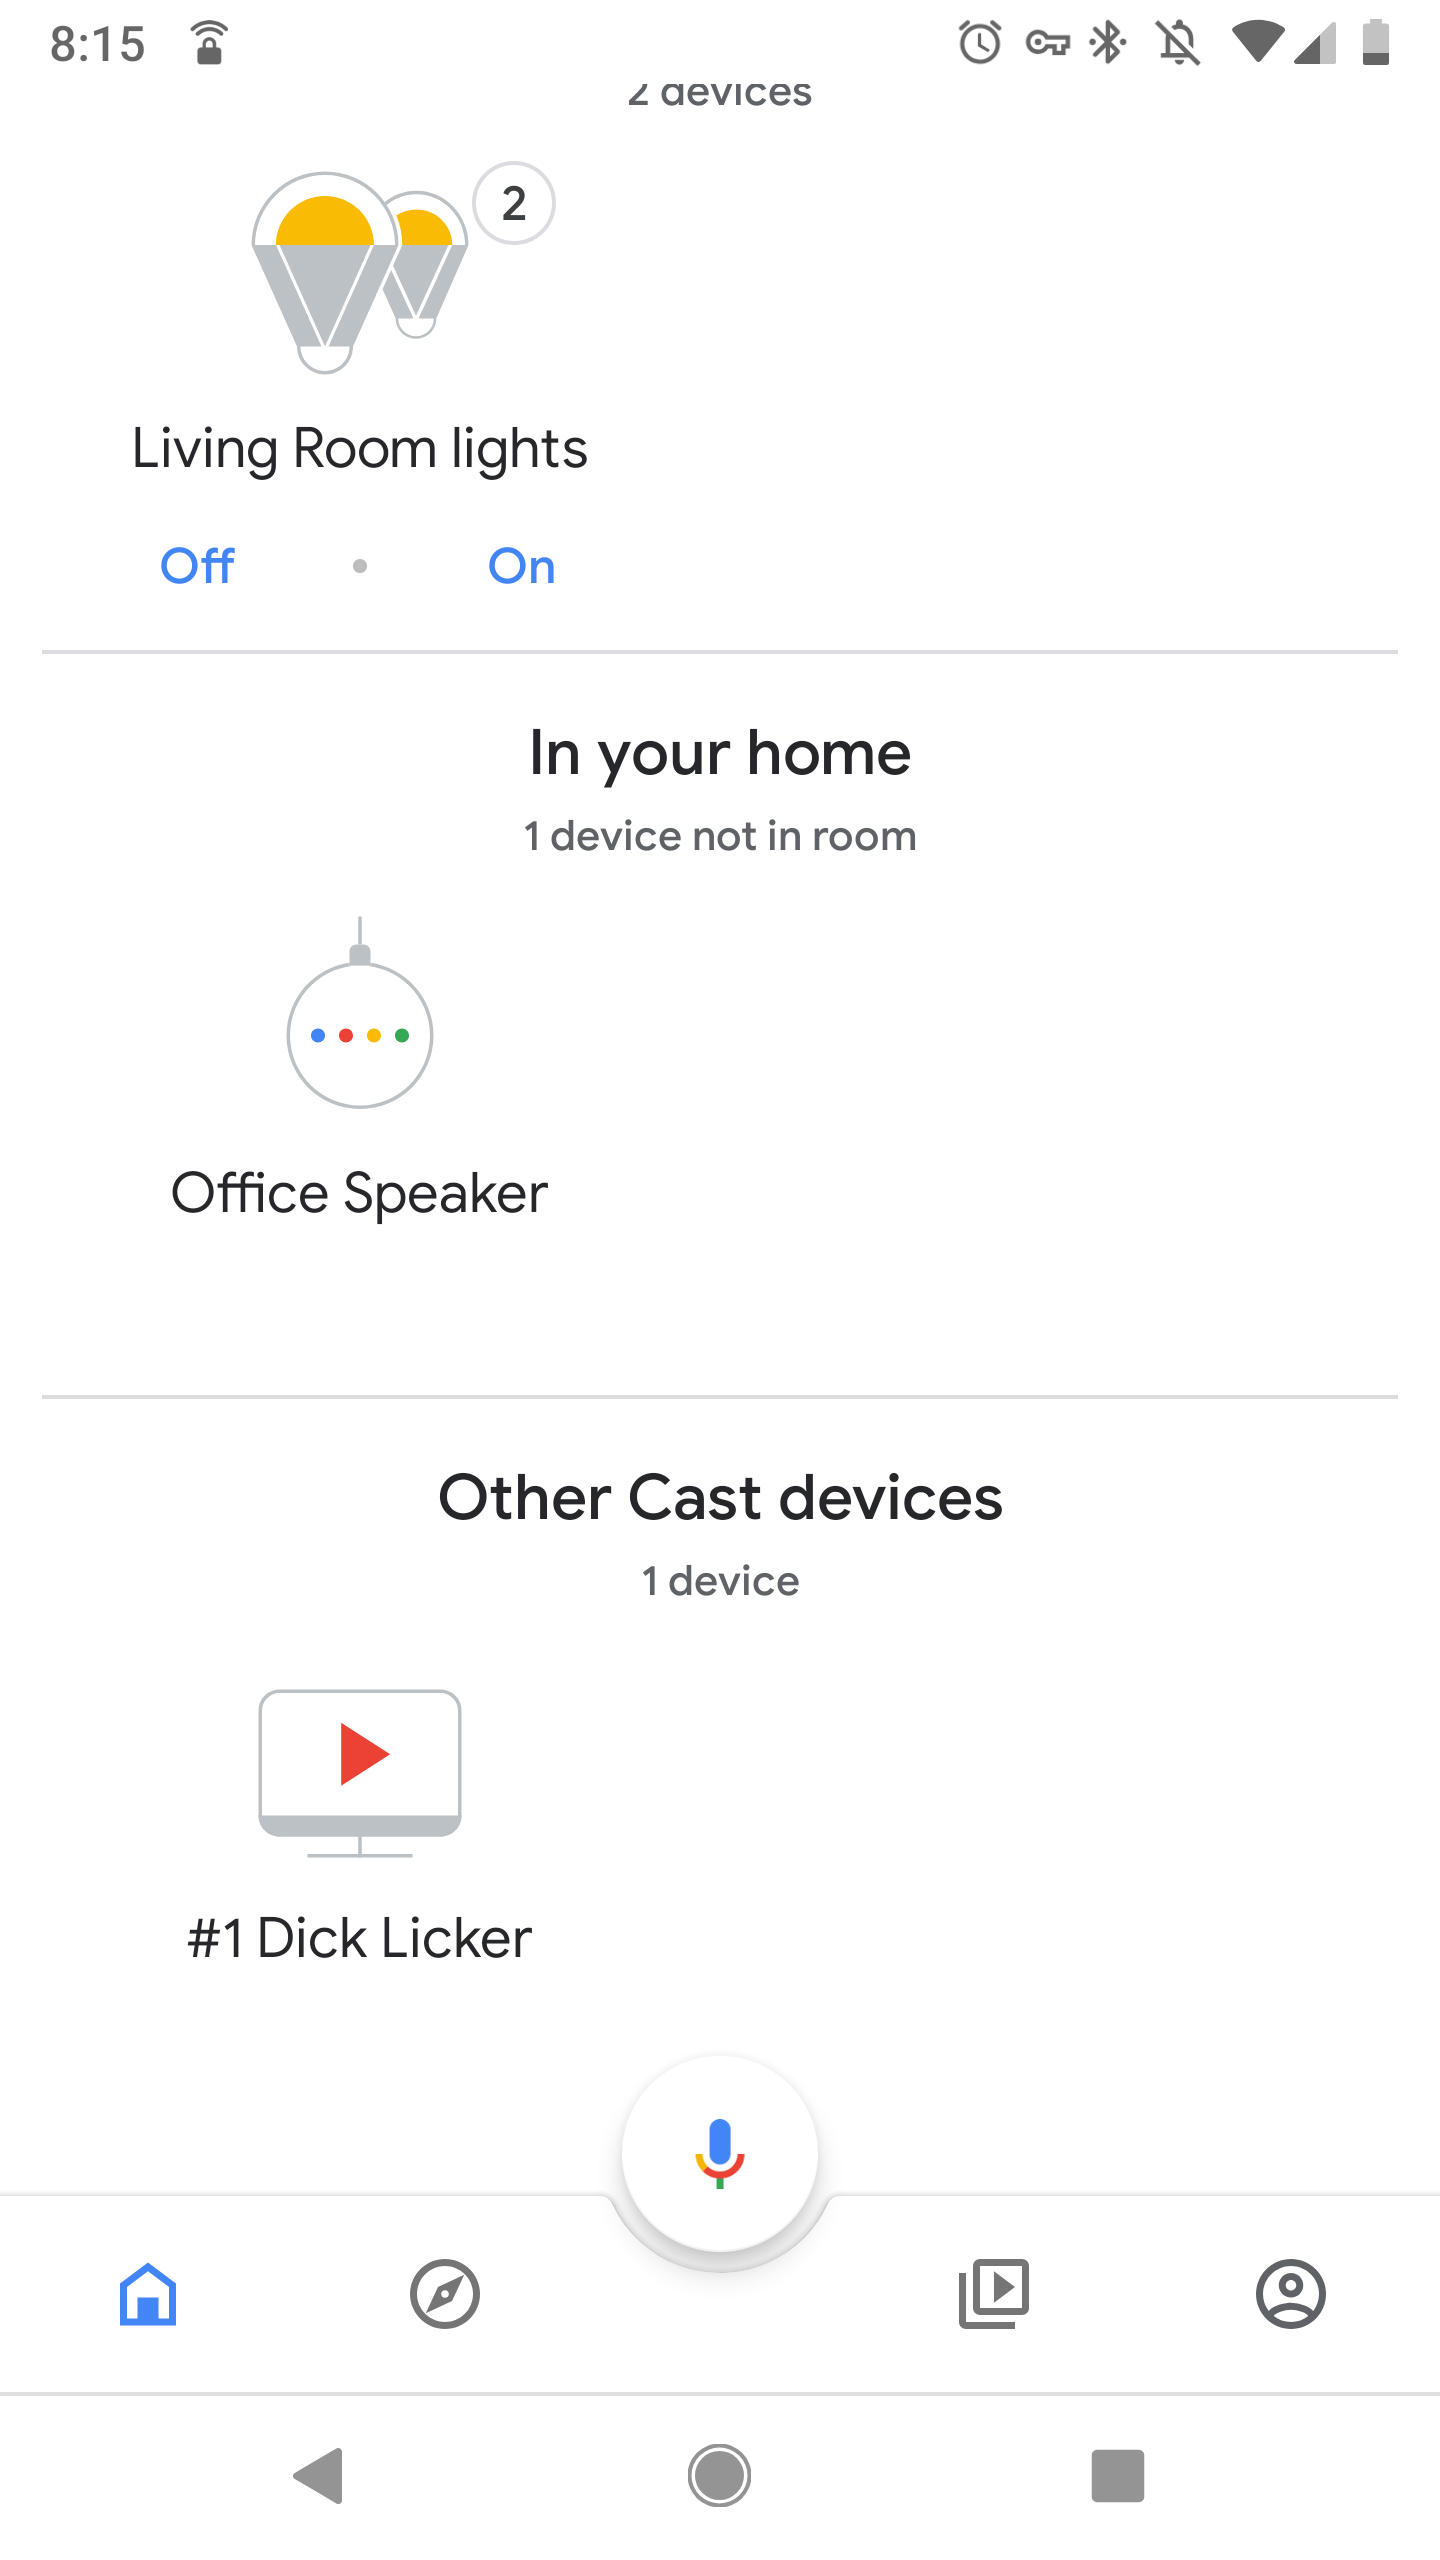 Someone else's cast device shows on my wifi - Google Nest Help